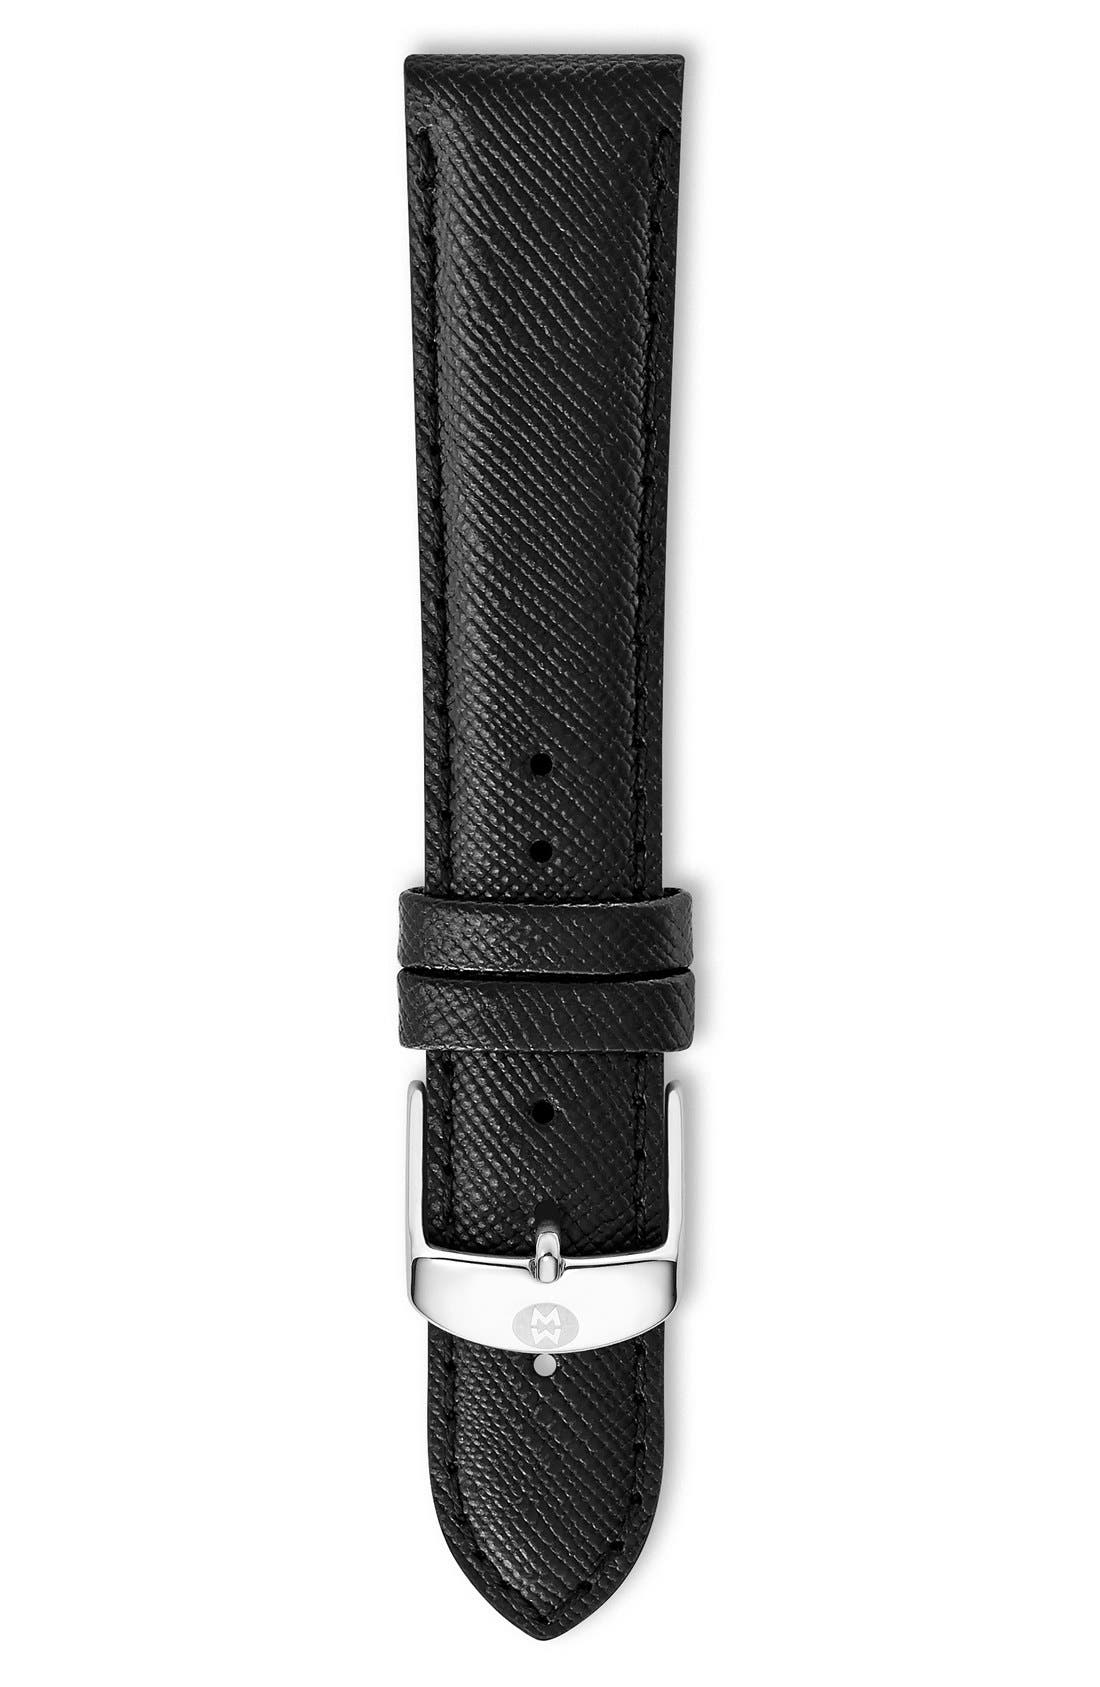 16mm Saffiano Leather Watch Strap,                             Main thumbnail 1, color,